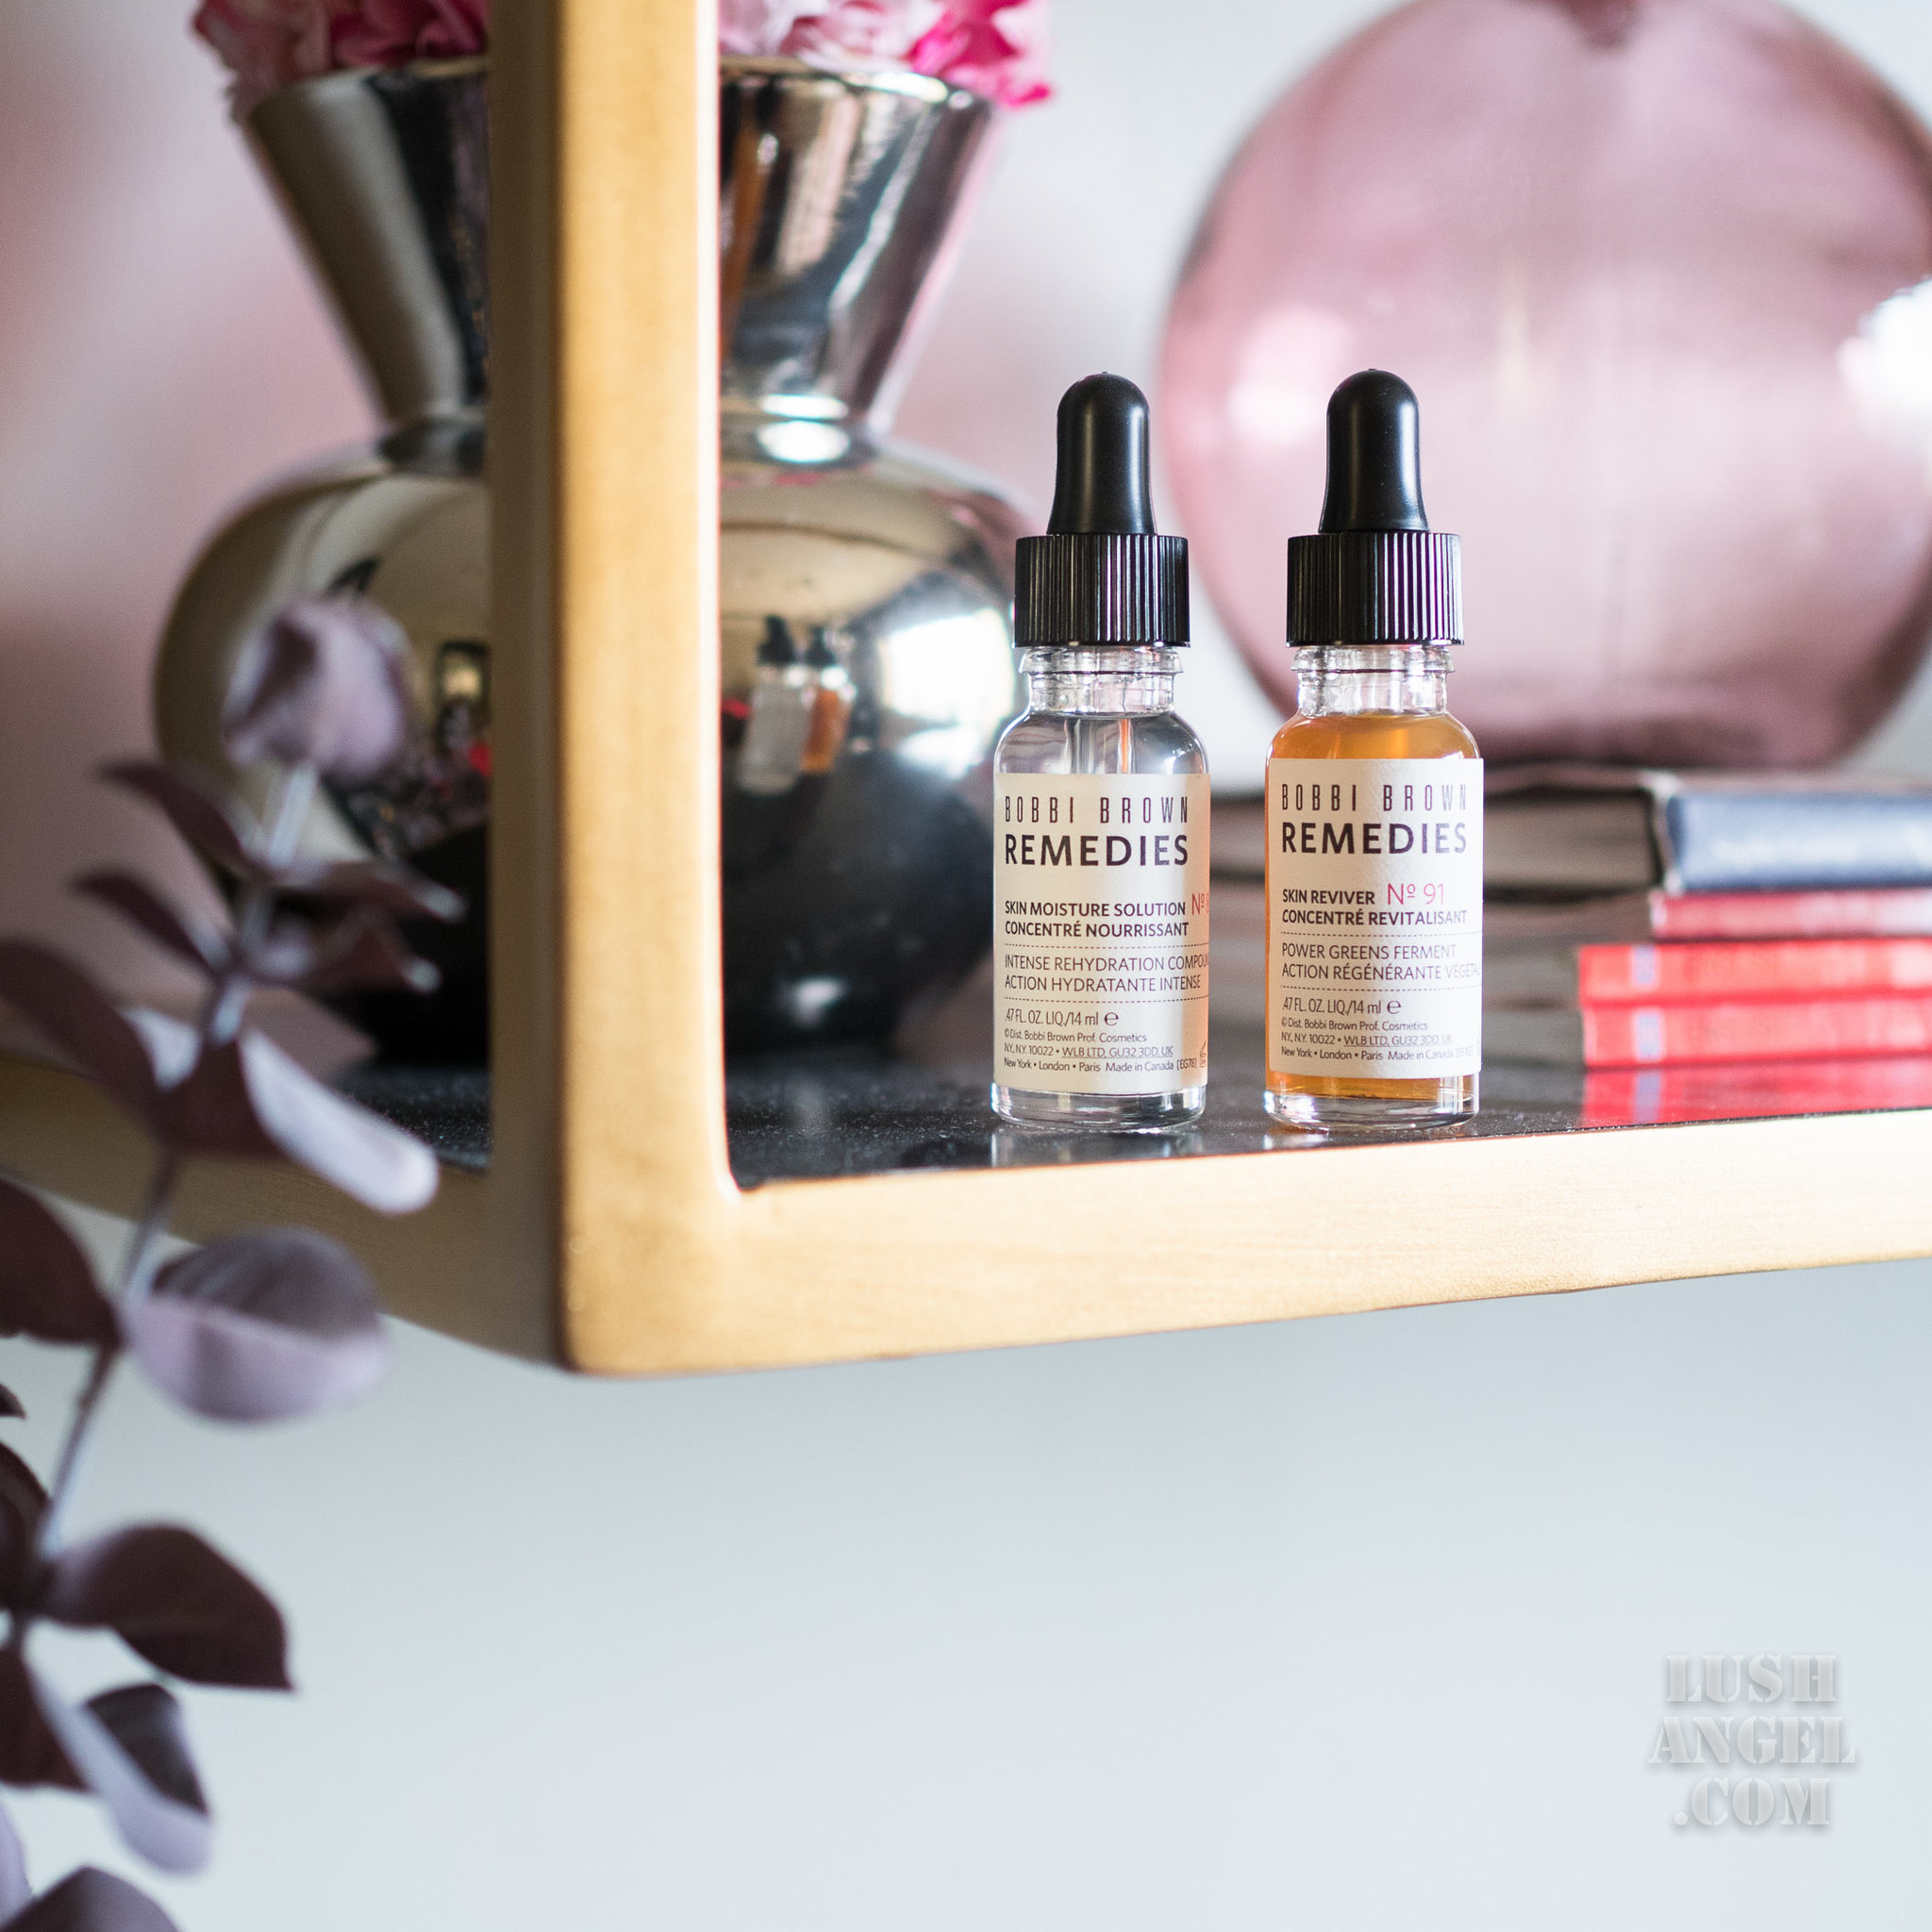 bobbi-brown-remedies